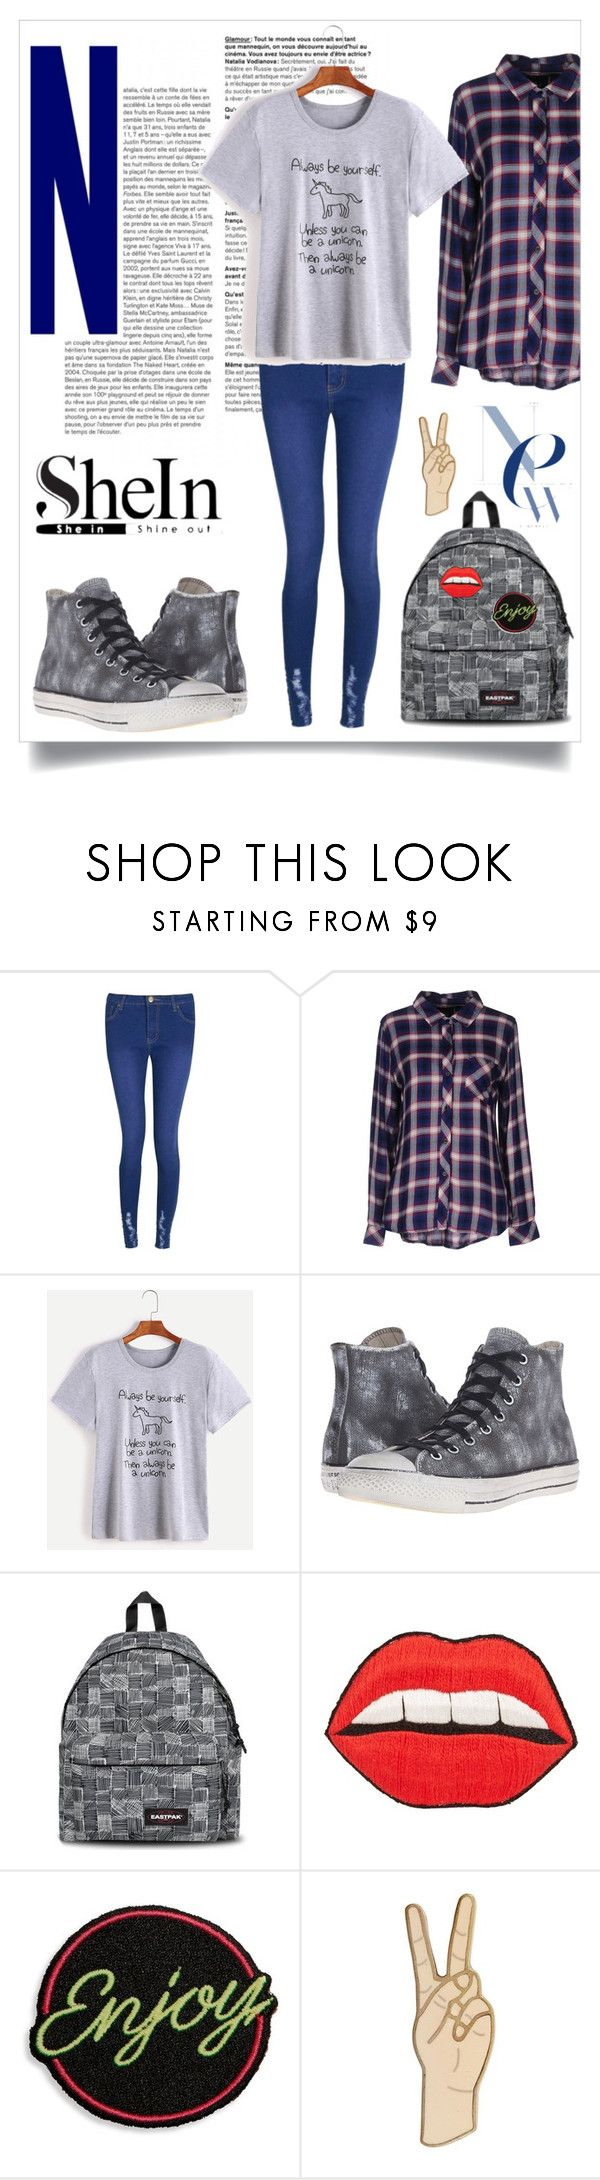 """""""Grey Unicorn T-Shirt"""" by stella-kar ❤ liked on Polyvore featuring Boohoo, Rails, Converse, Eastpak, Happy Embellishments, Marc Jacobs and Lucky Brand"""